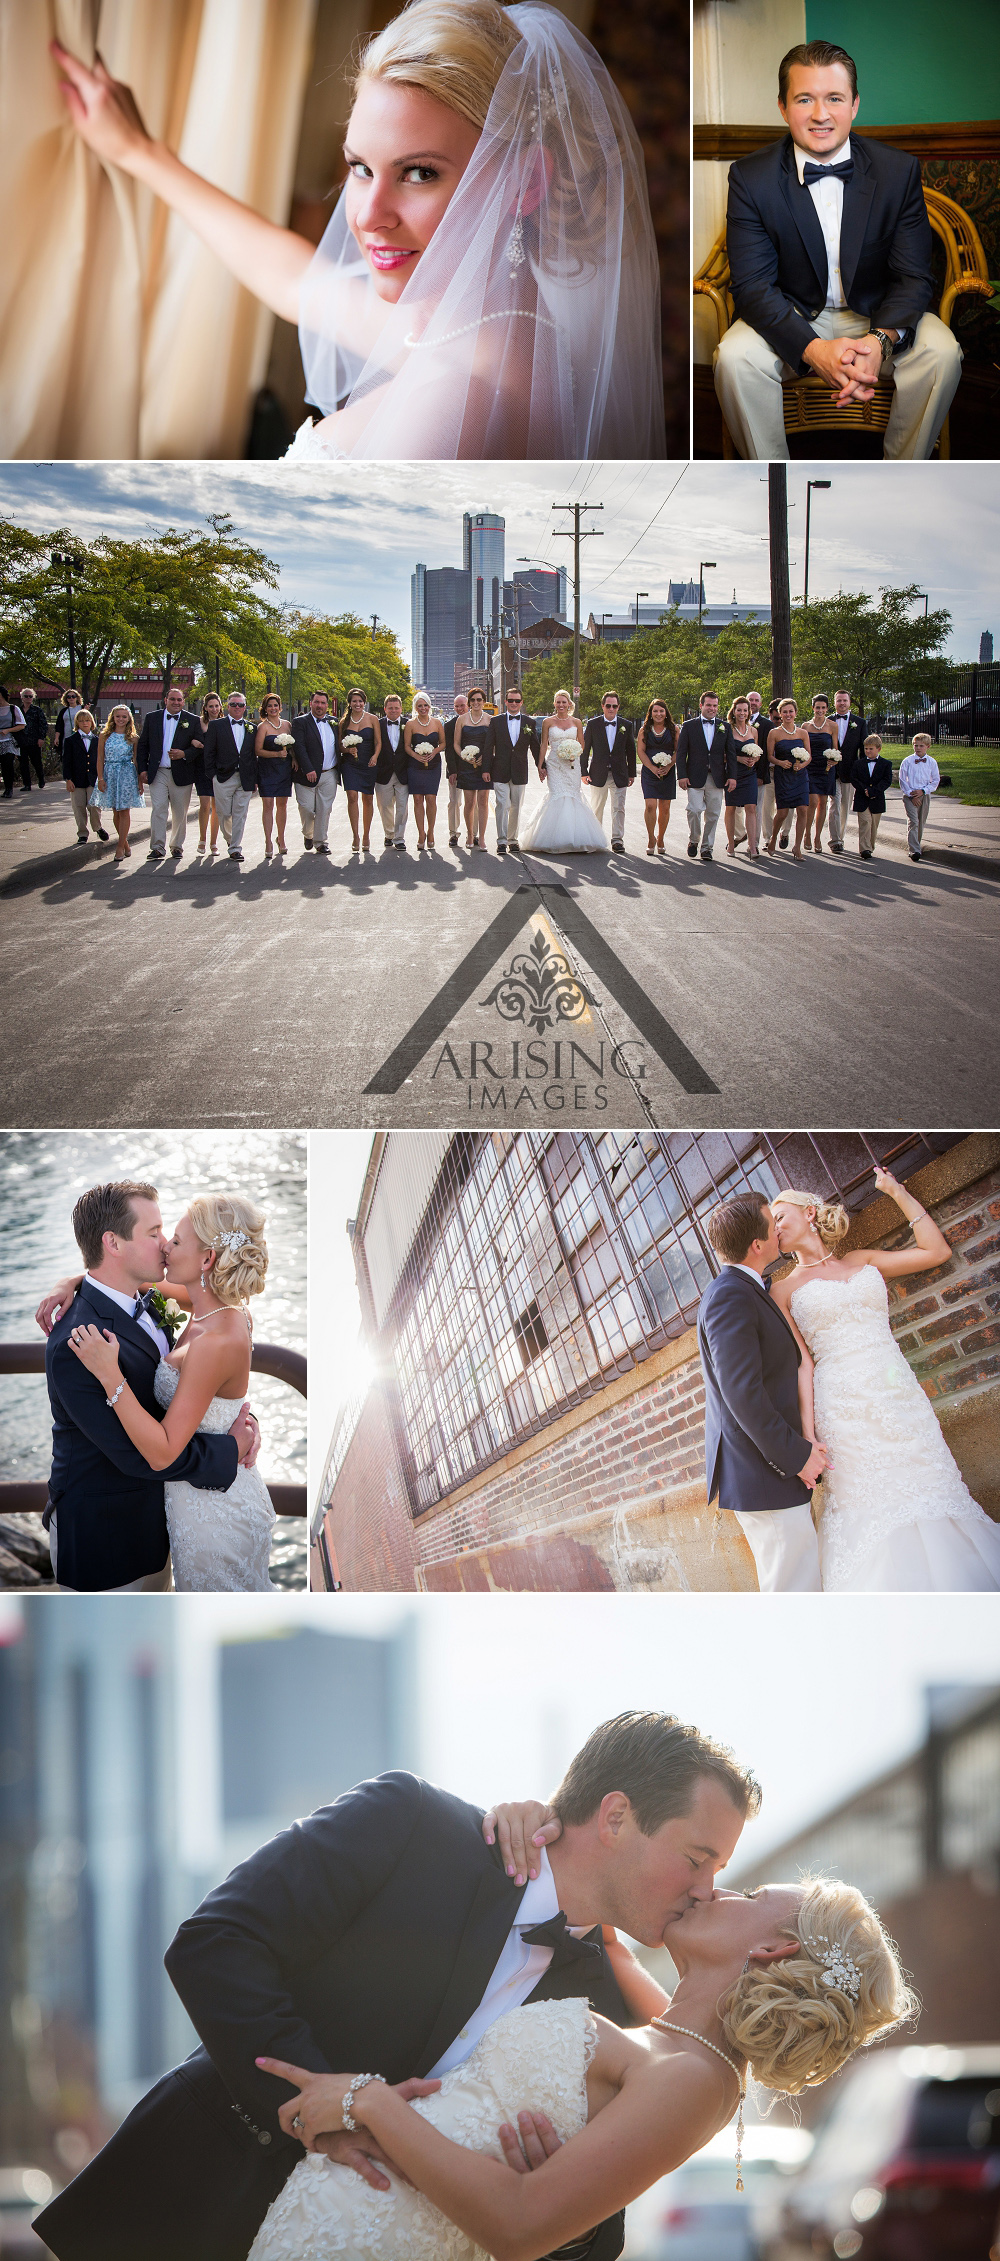 Unique Michigan wedding photography